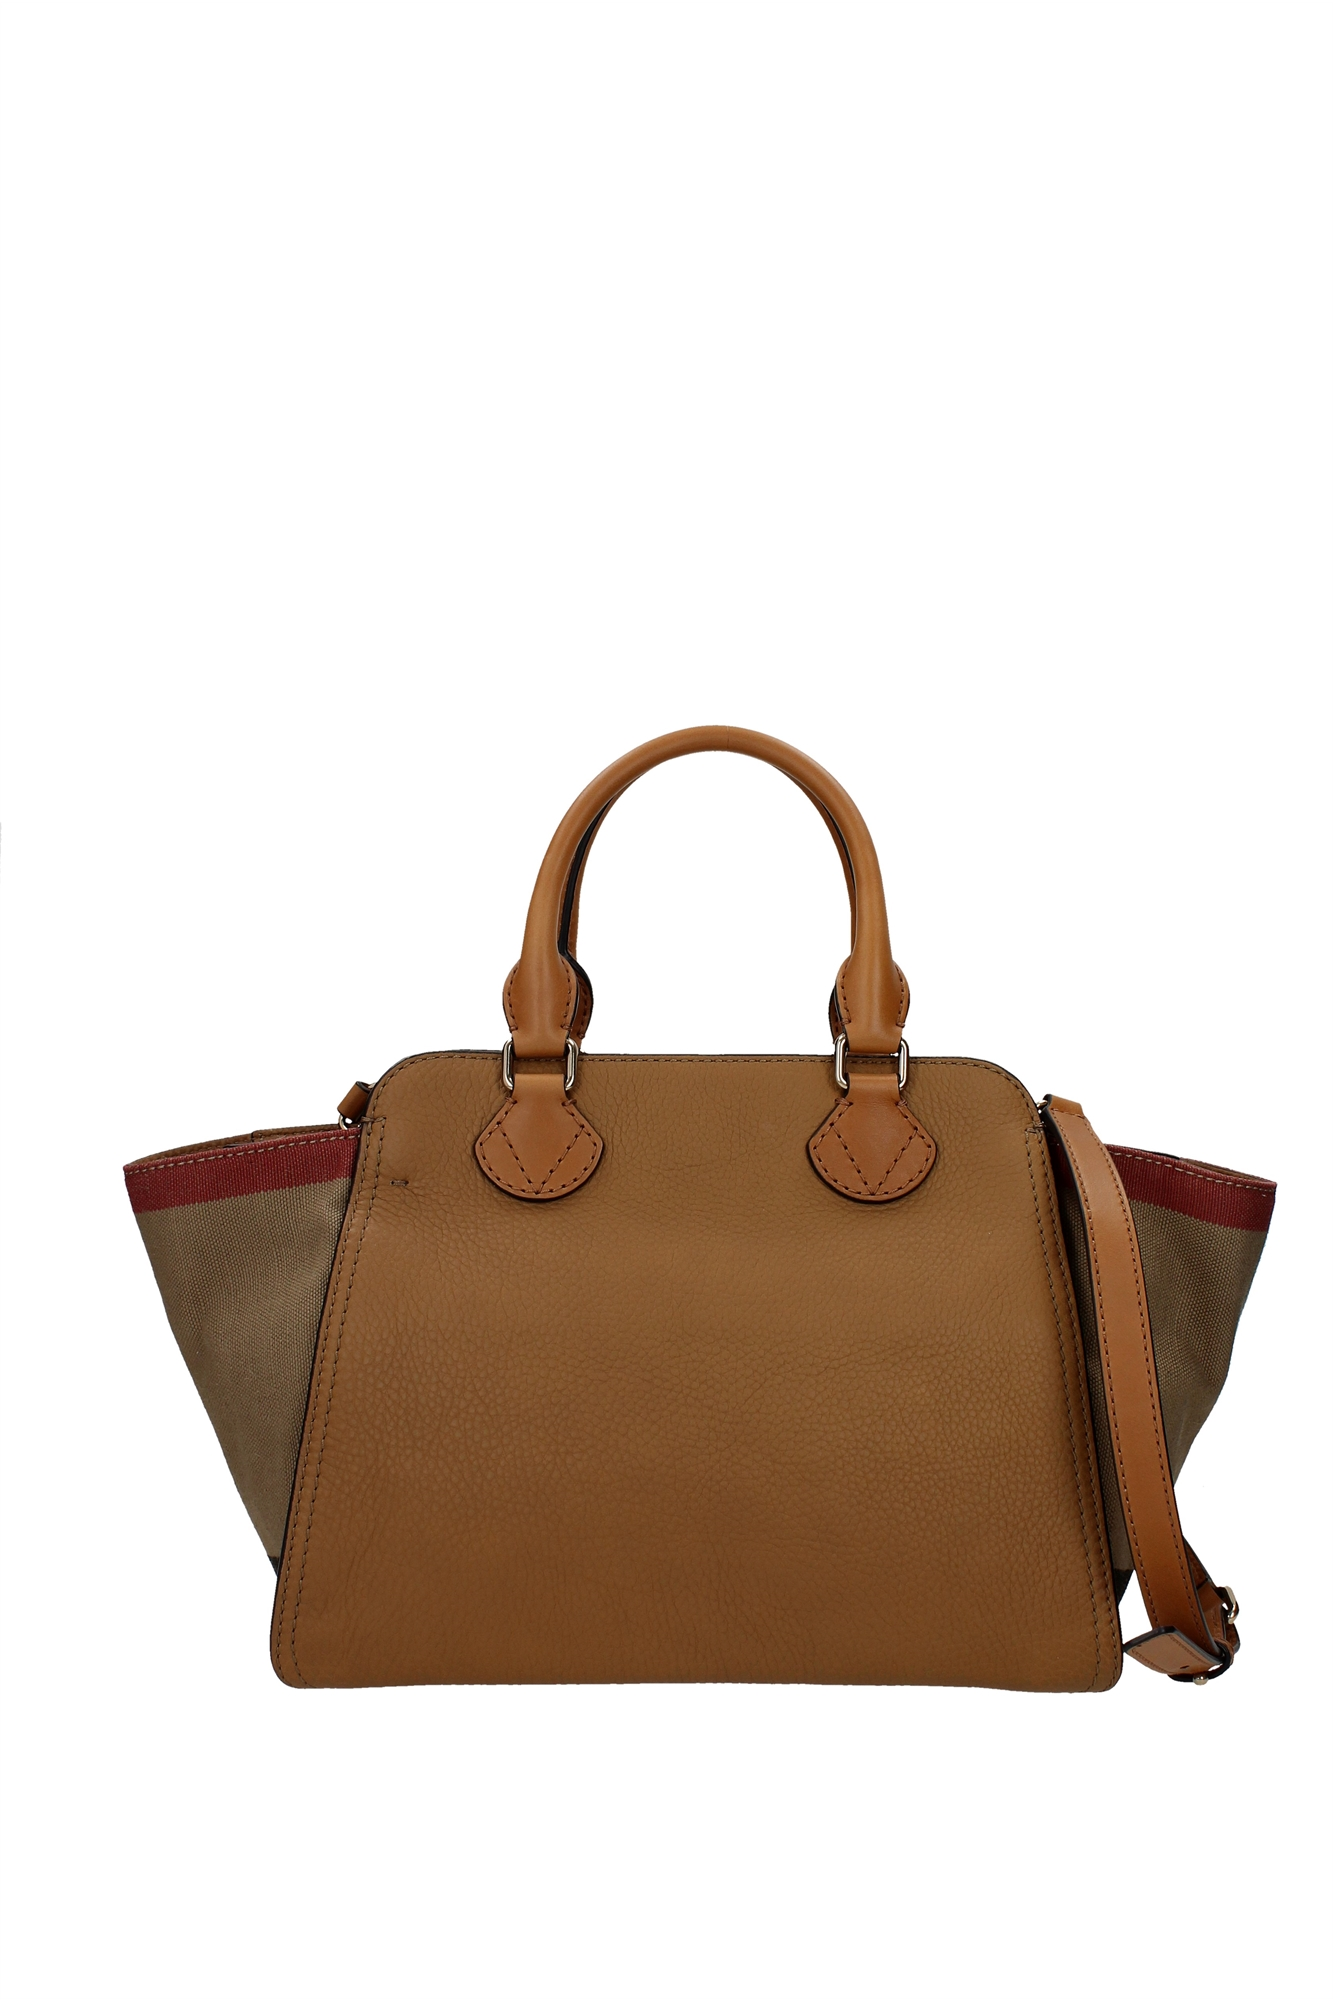 Hand Bags Burberry Women Leather Brown 3992188 | eBay